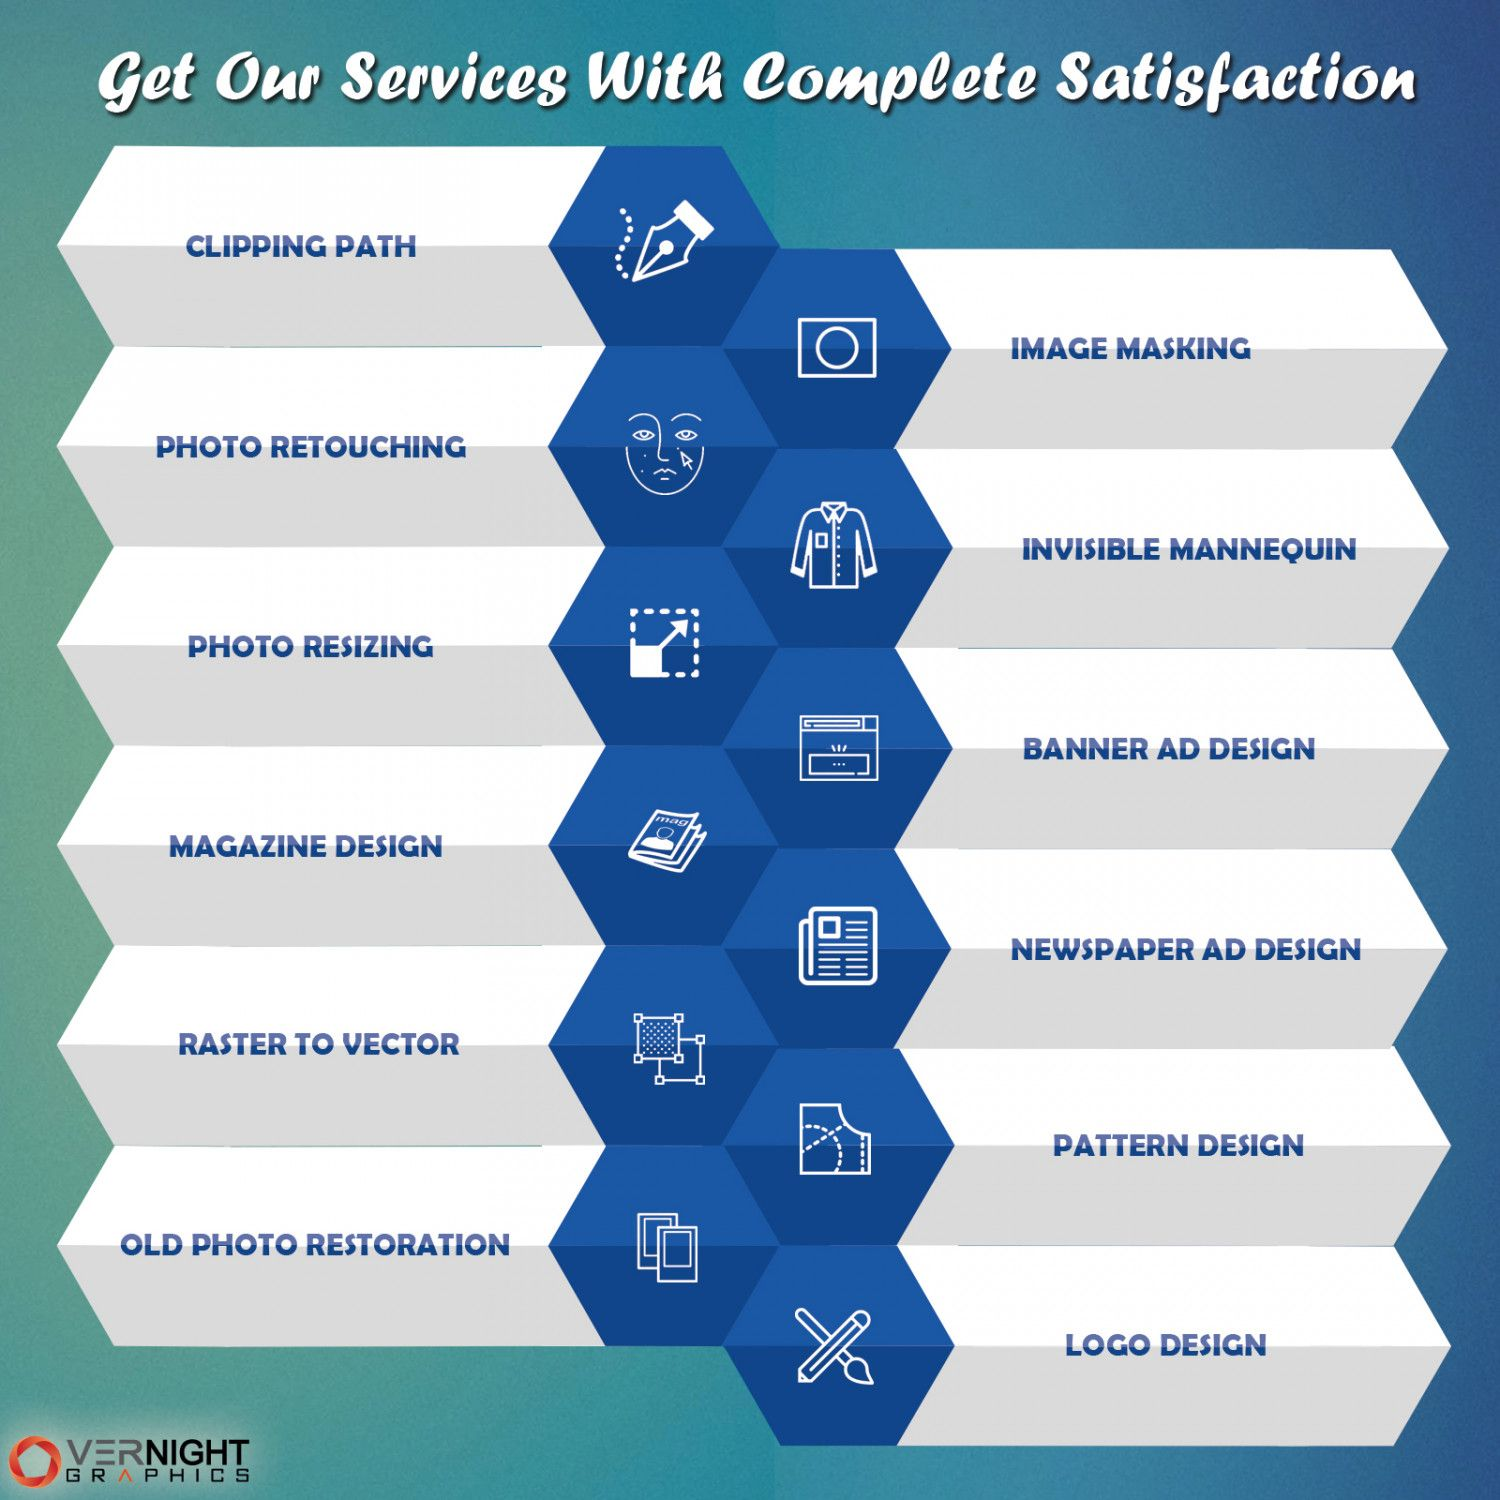 Get ONG Services With Complete Satisfaction Infographic